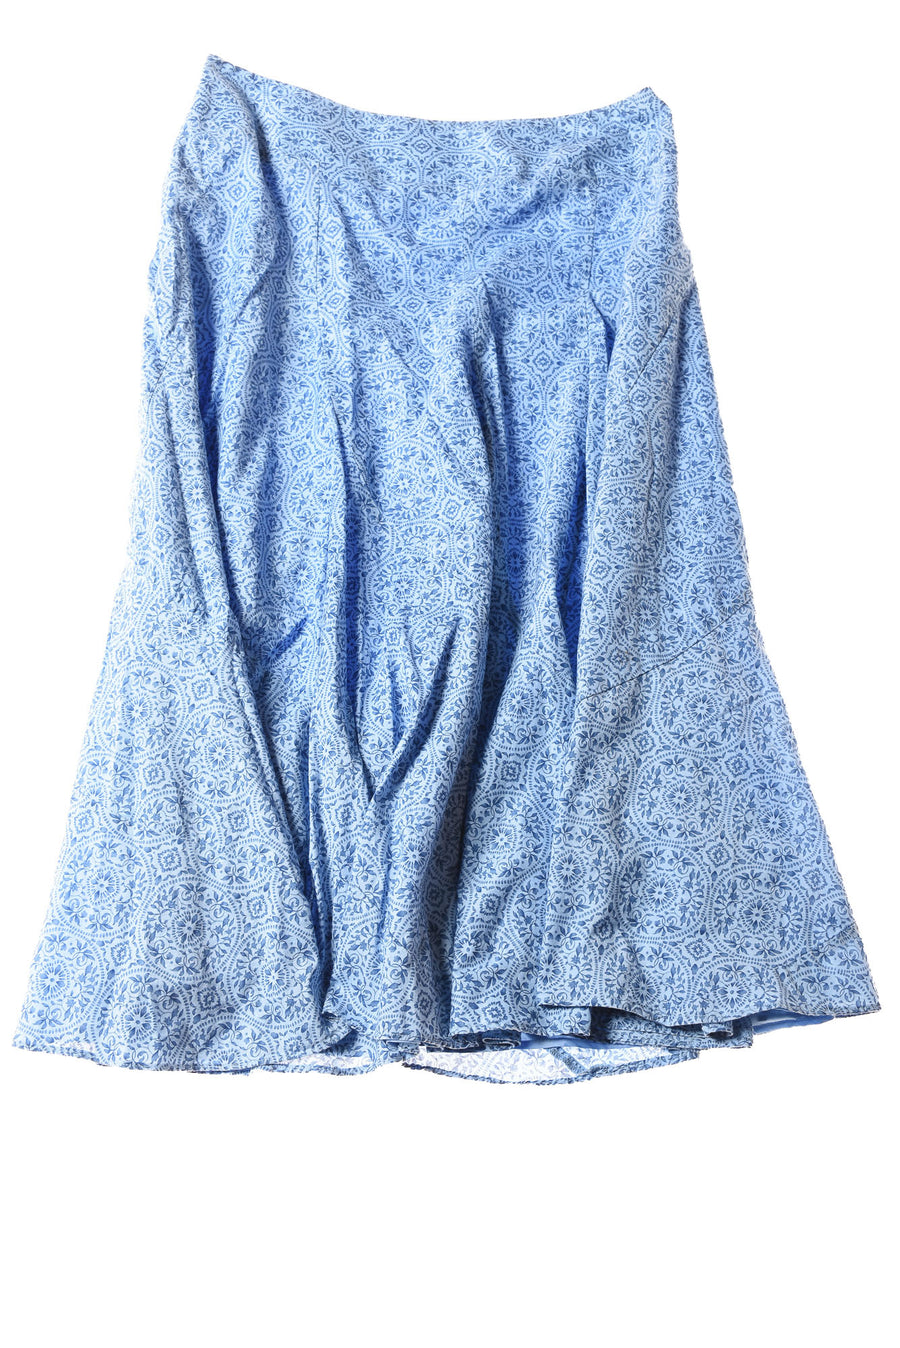 USED Charter Club Women's Petite Skirt 12 Blue / Print